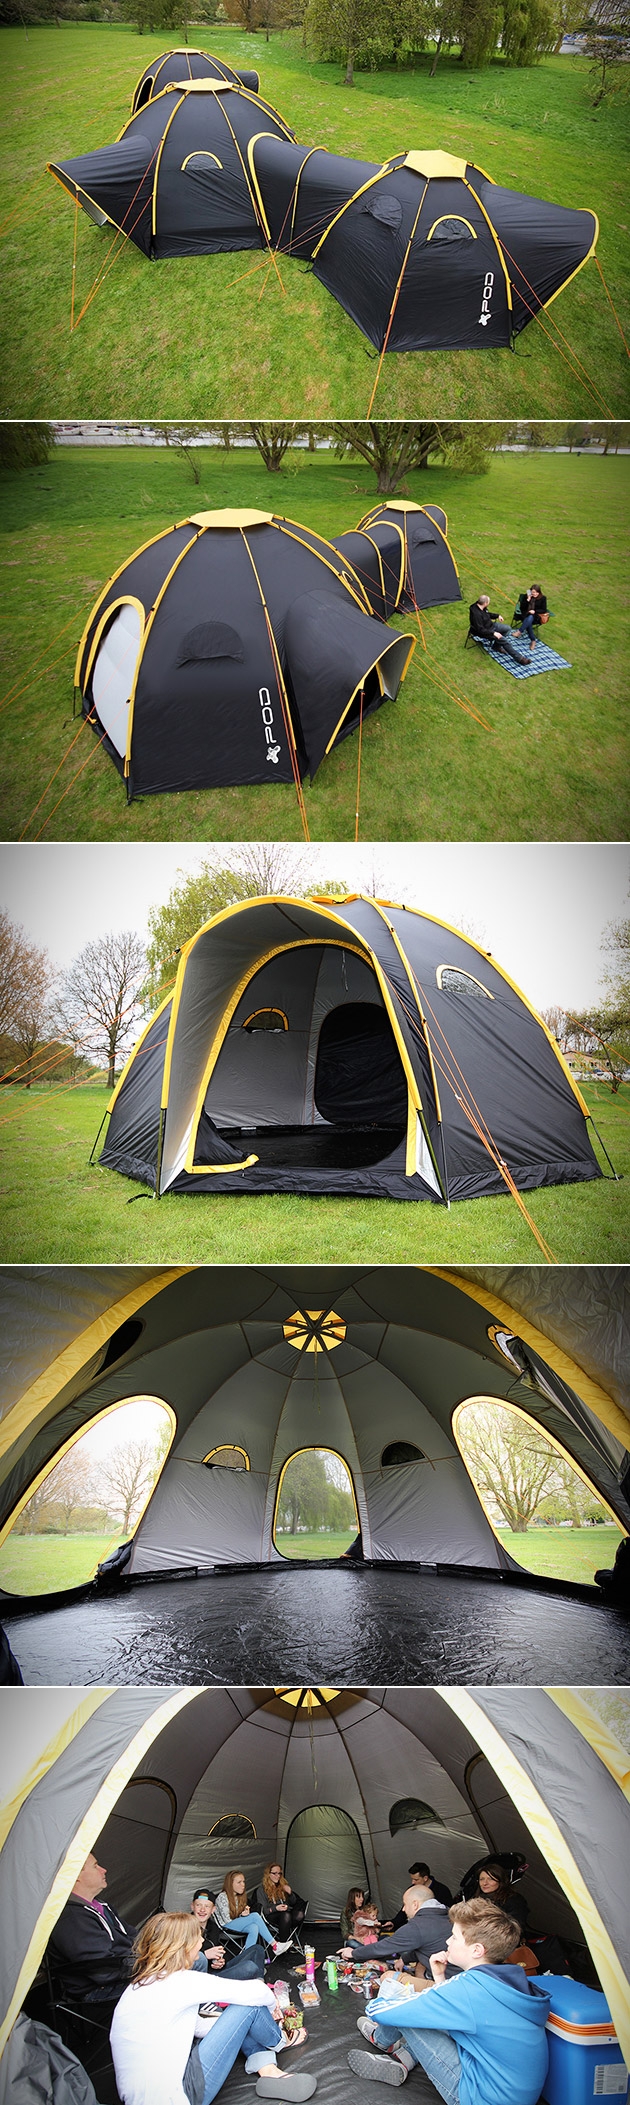 POD Tents & POD Tents are Modular and Can Easily be Connected to Form a Tent ...